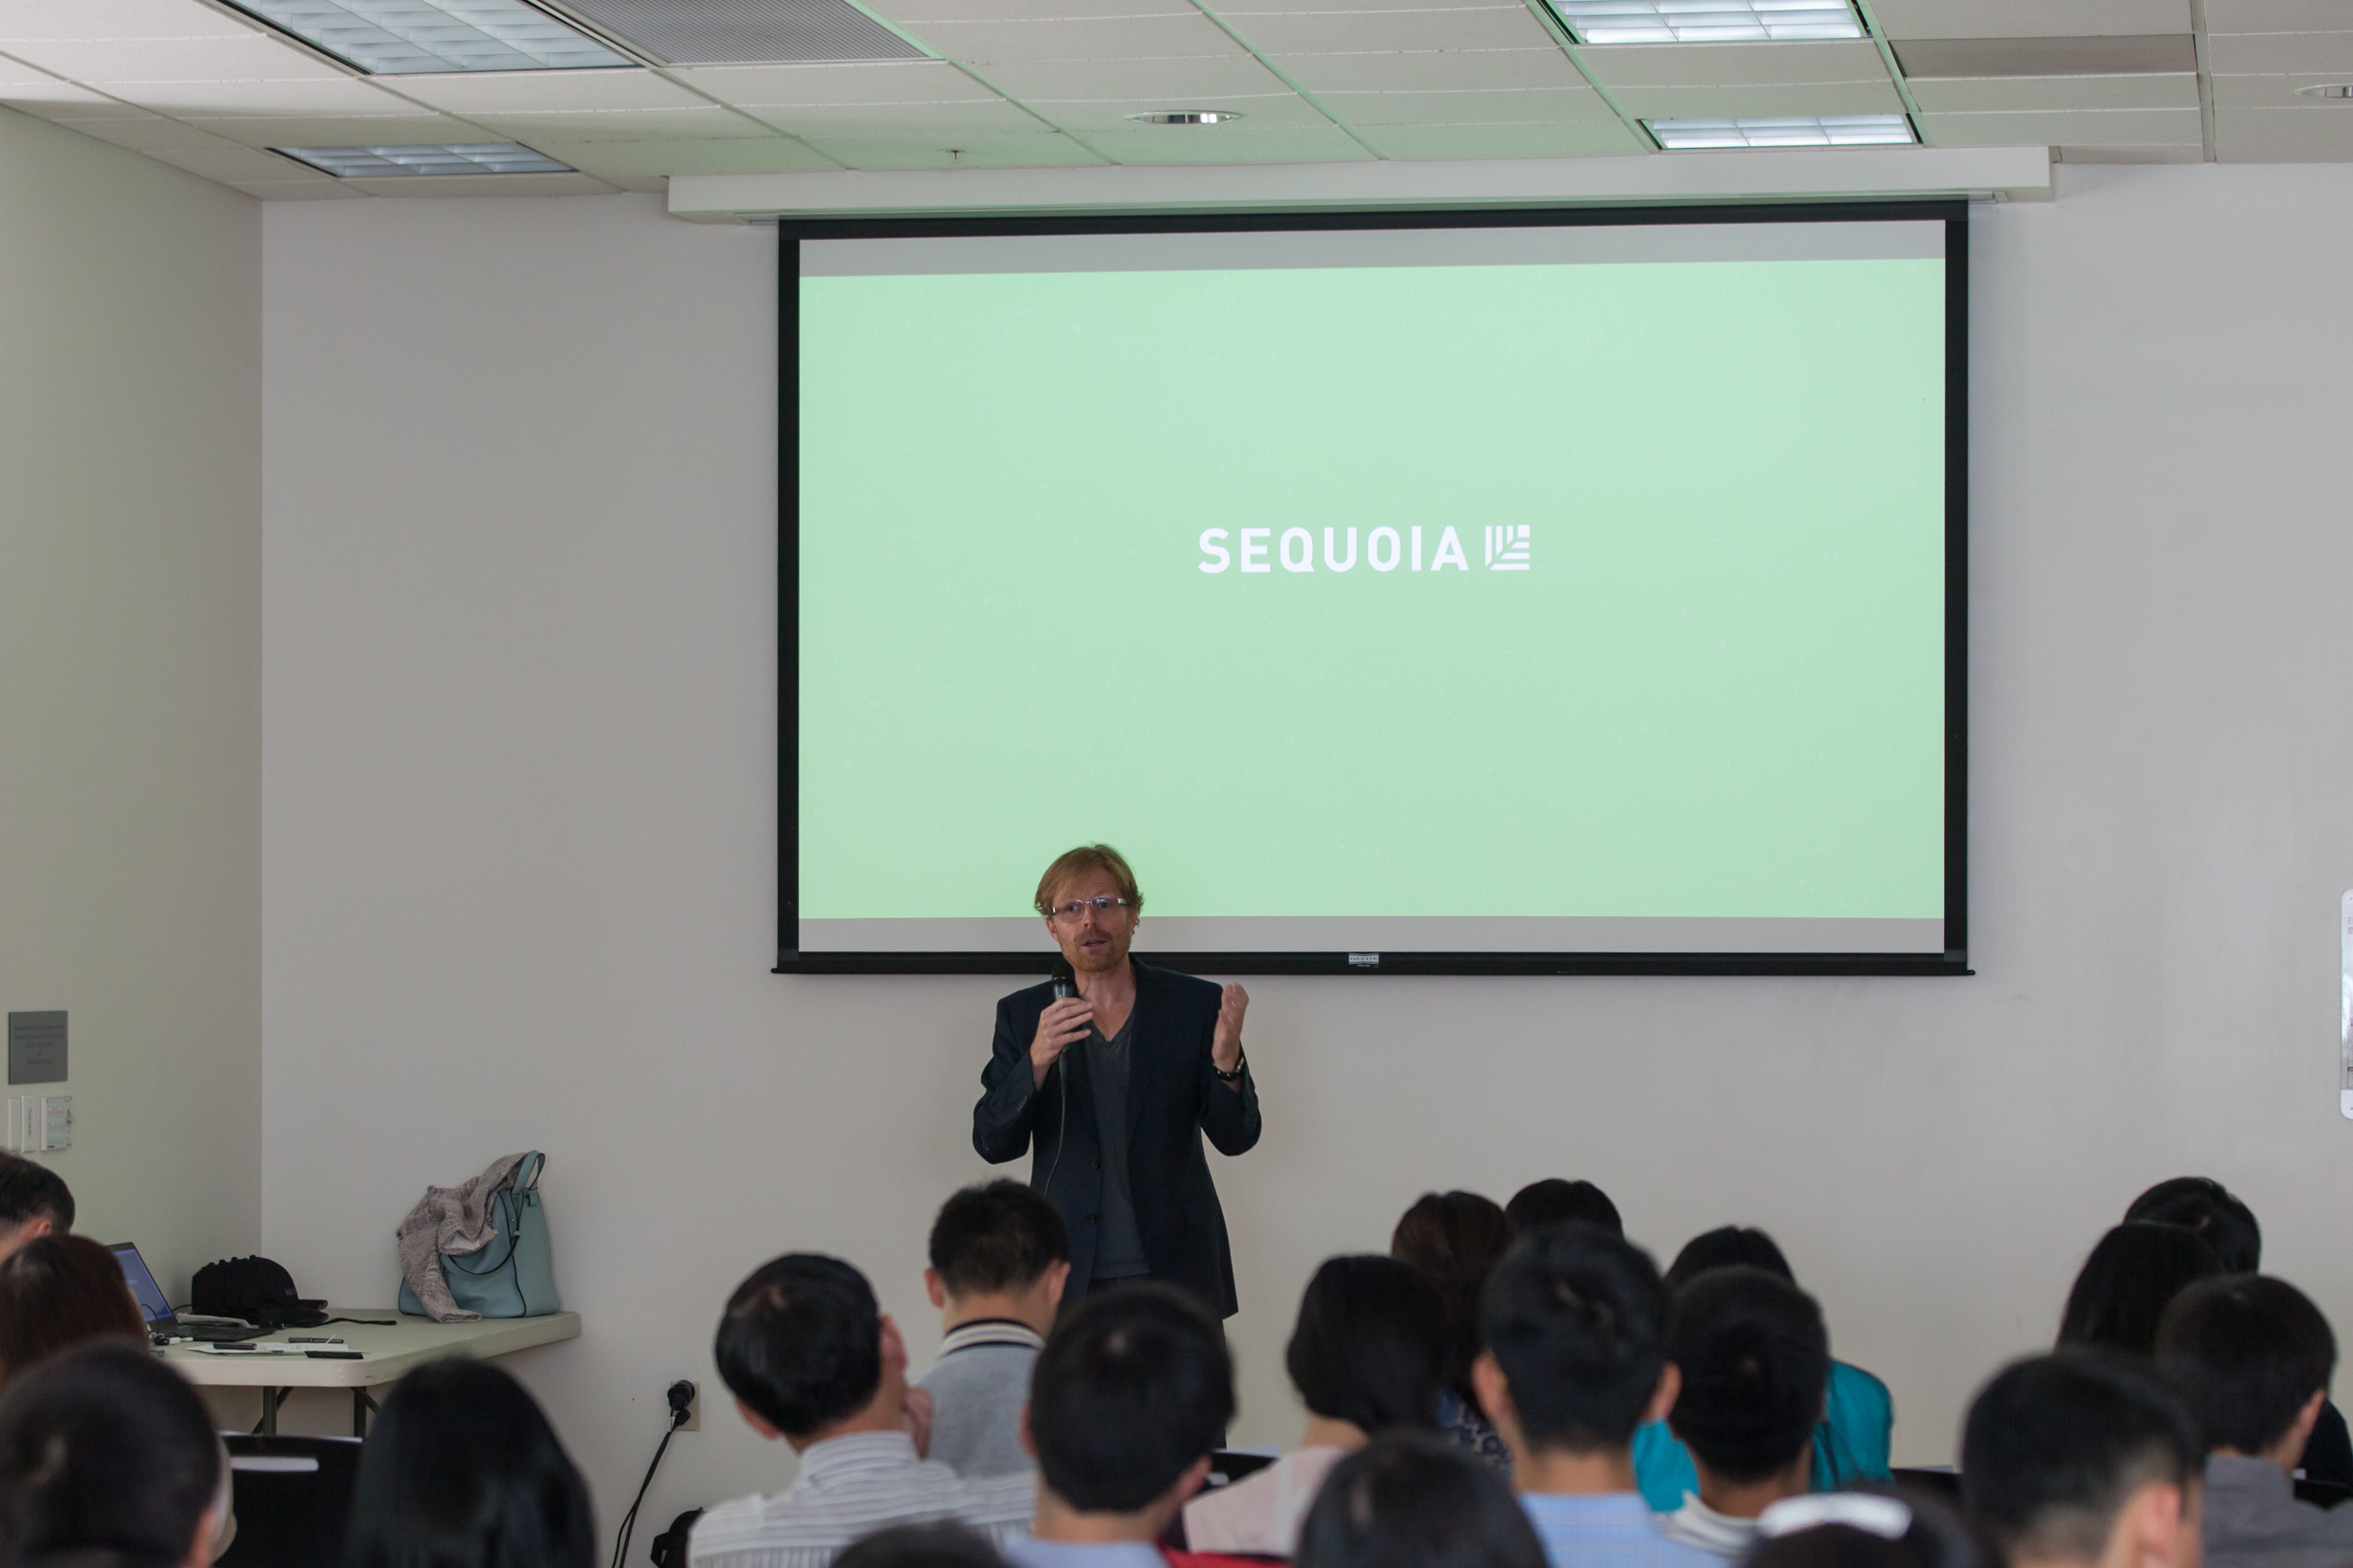 Sequoia China Featured Event - Borge Hald